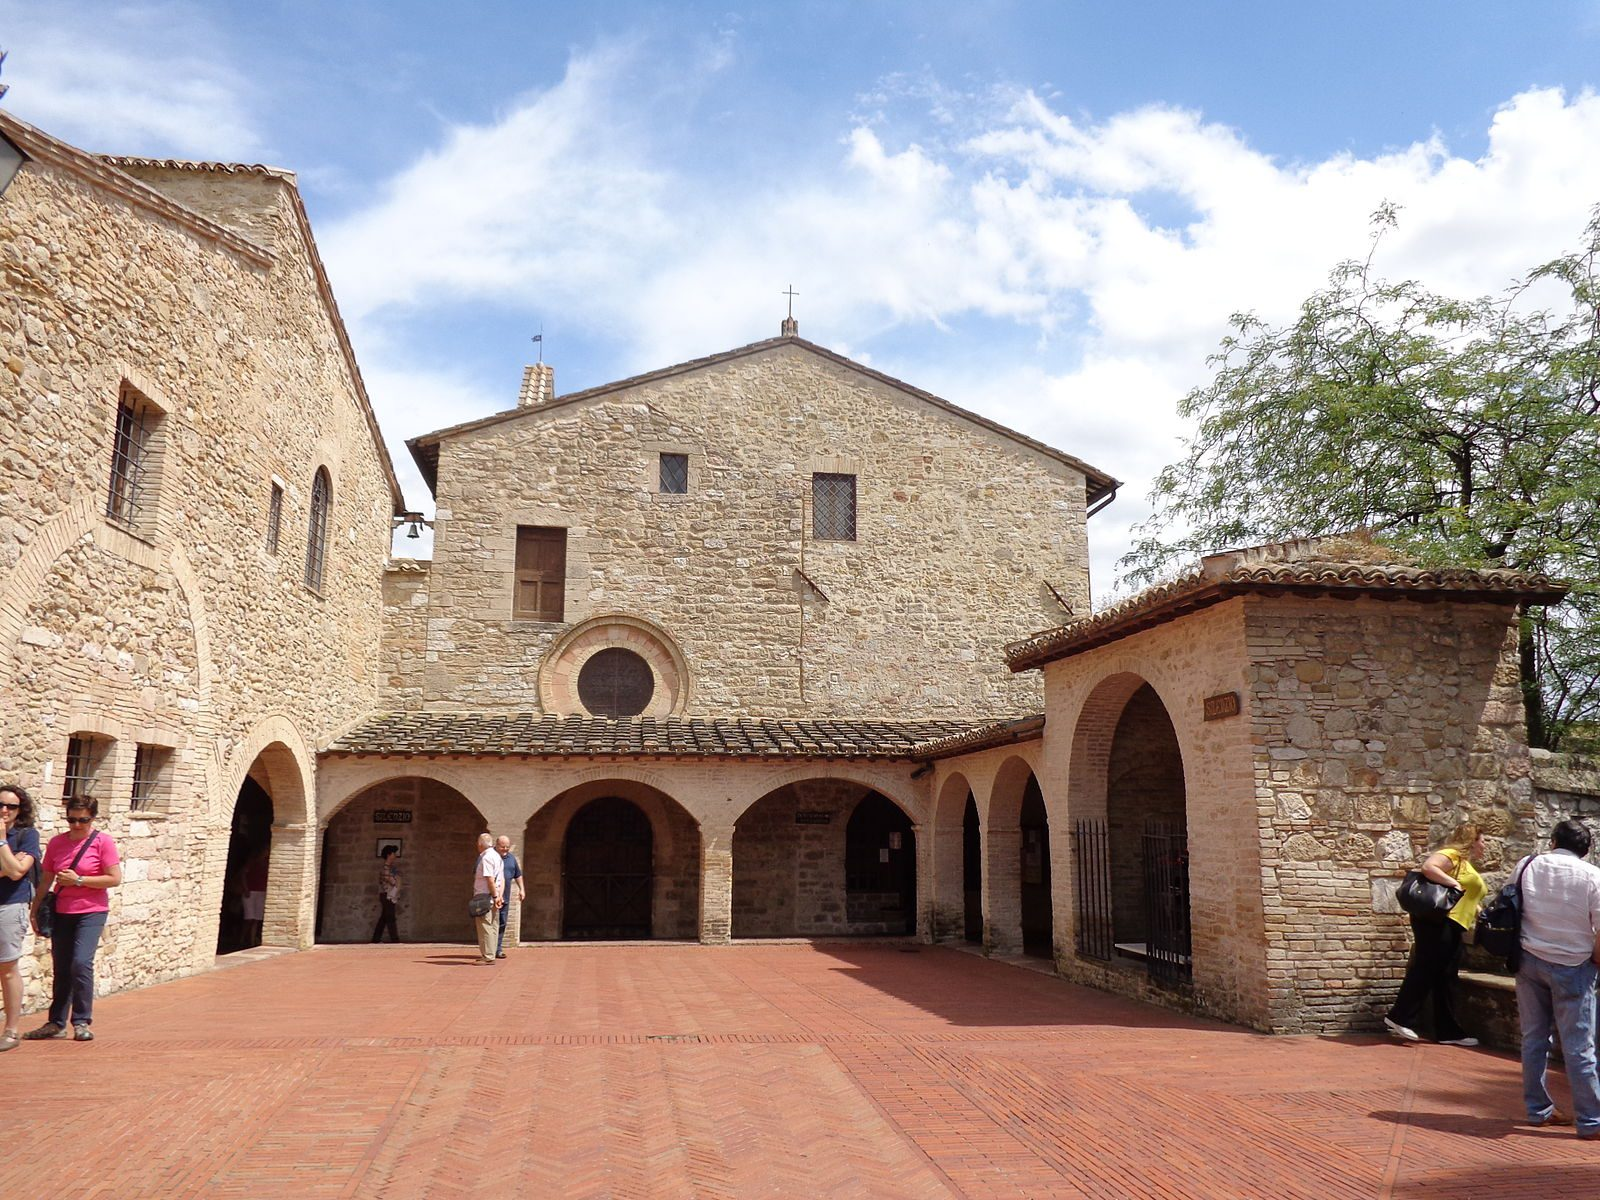 1600px-San_Damiano_(Assisi)_02